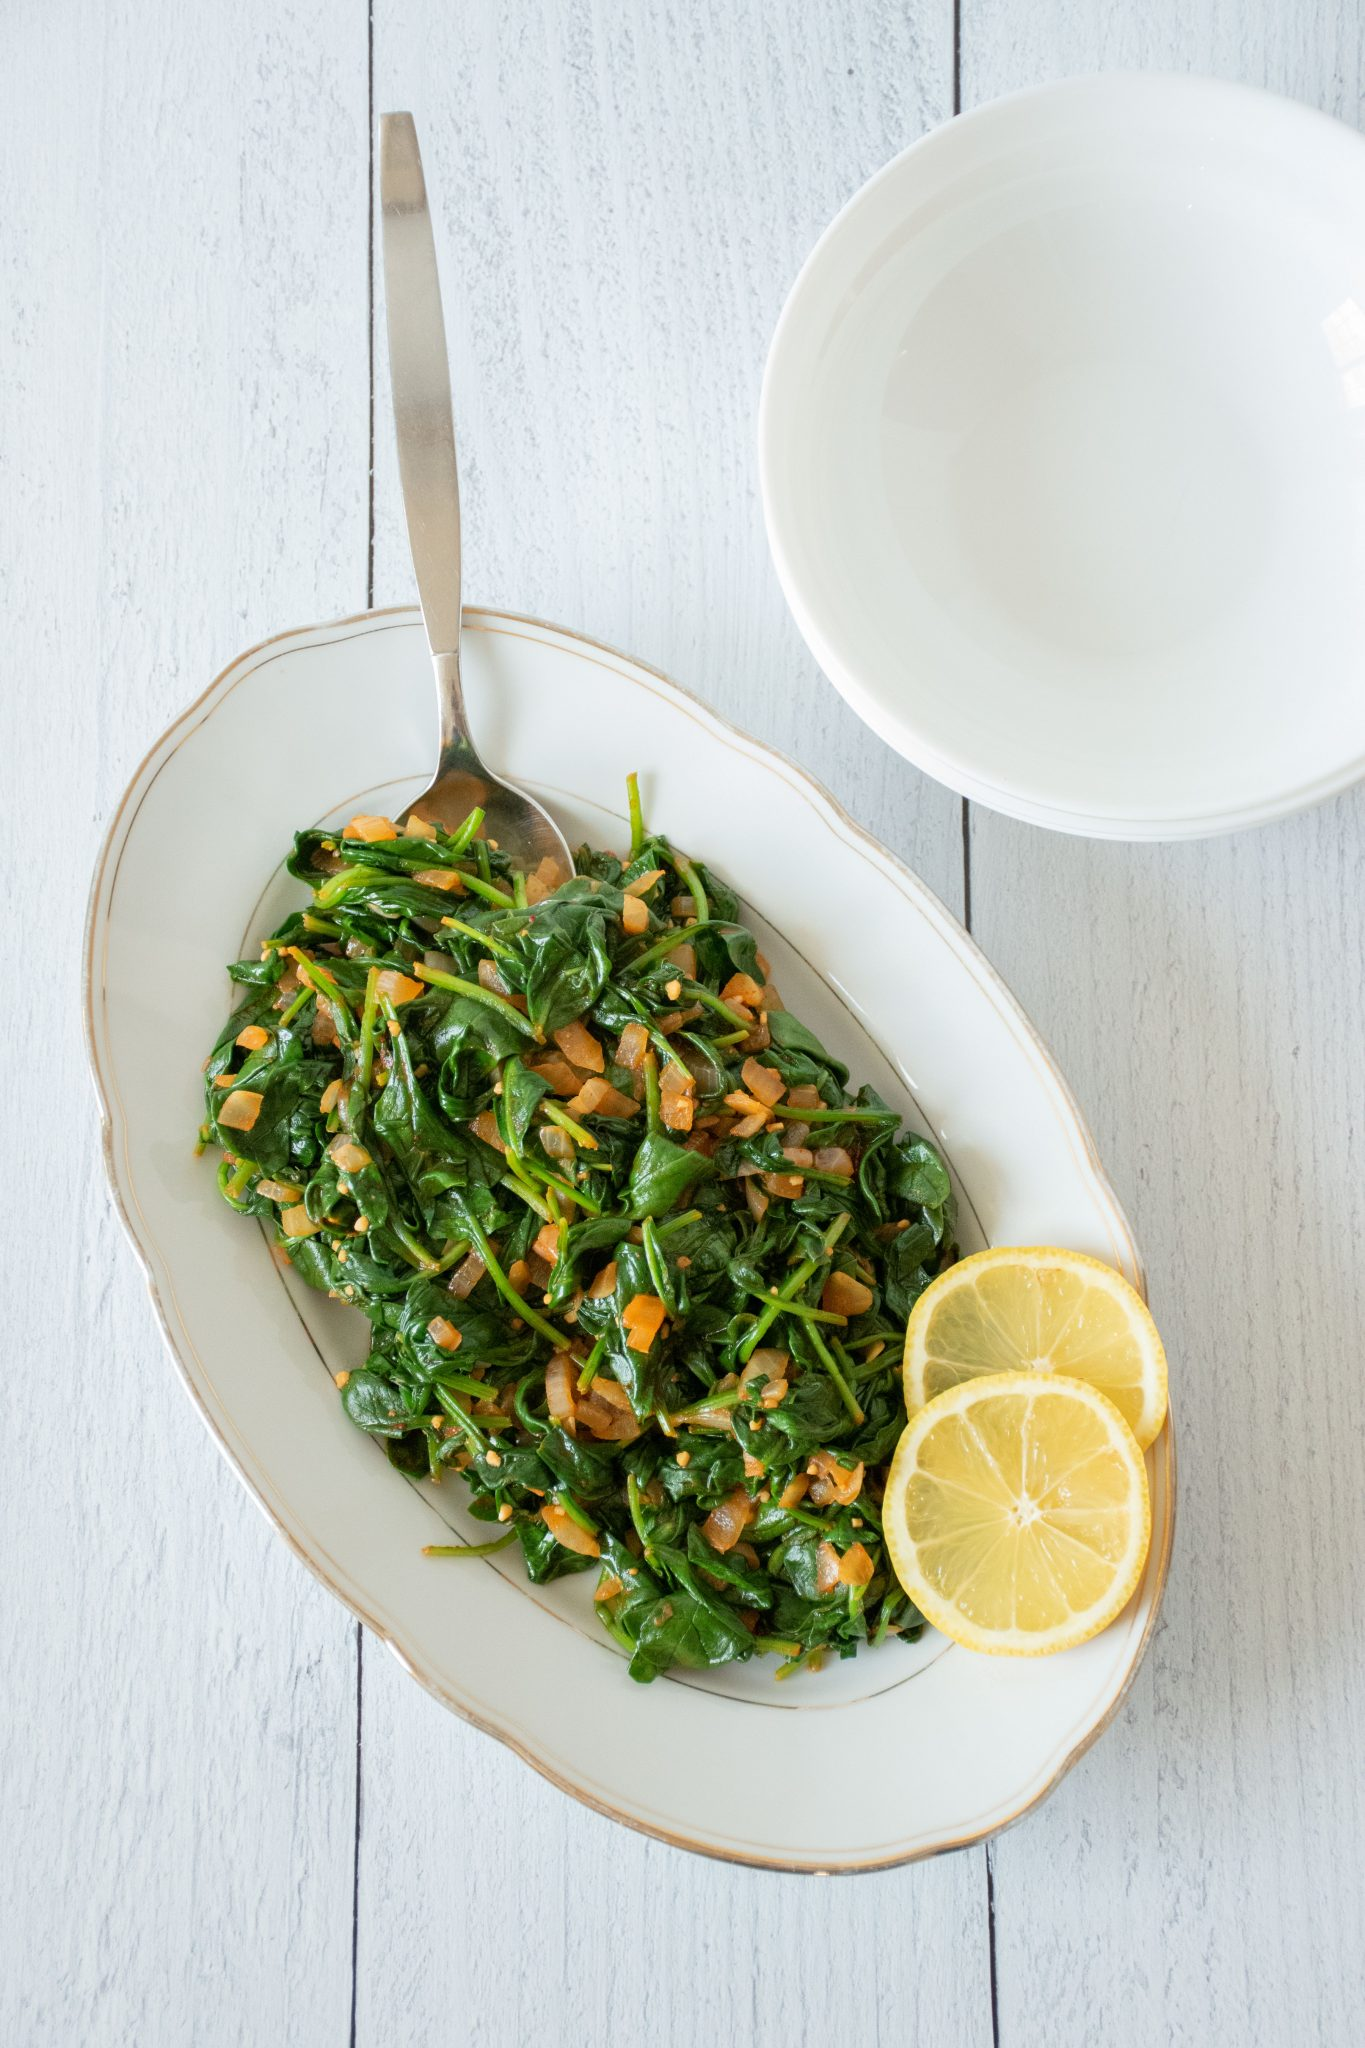 Top view of Smoky Sauteed Spinach, with a spoon in the dish and 2 lemon slices on the side.